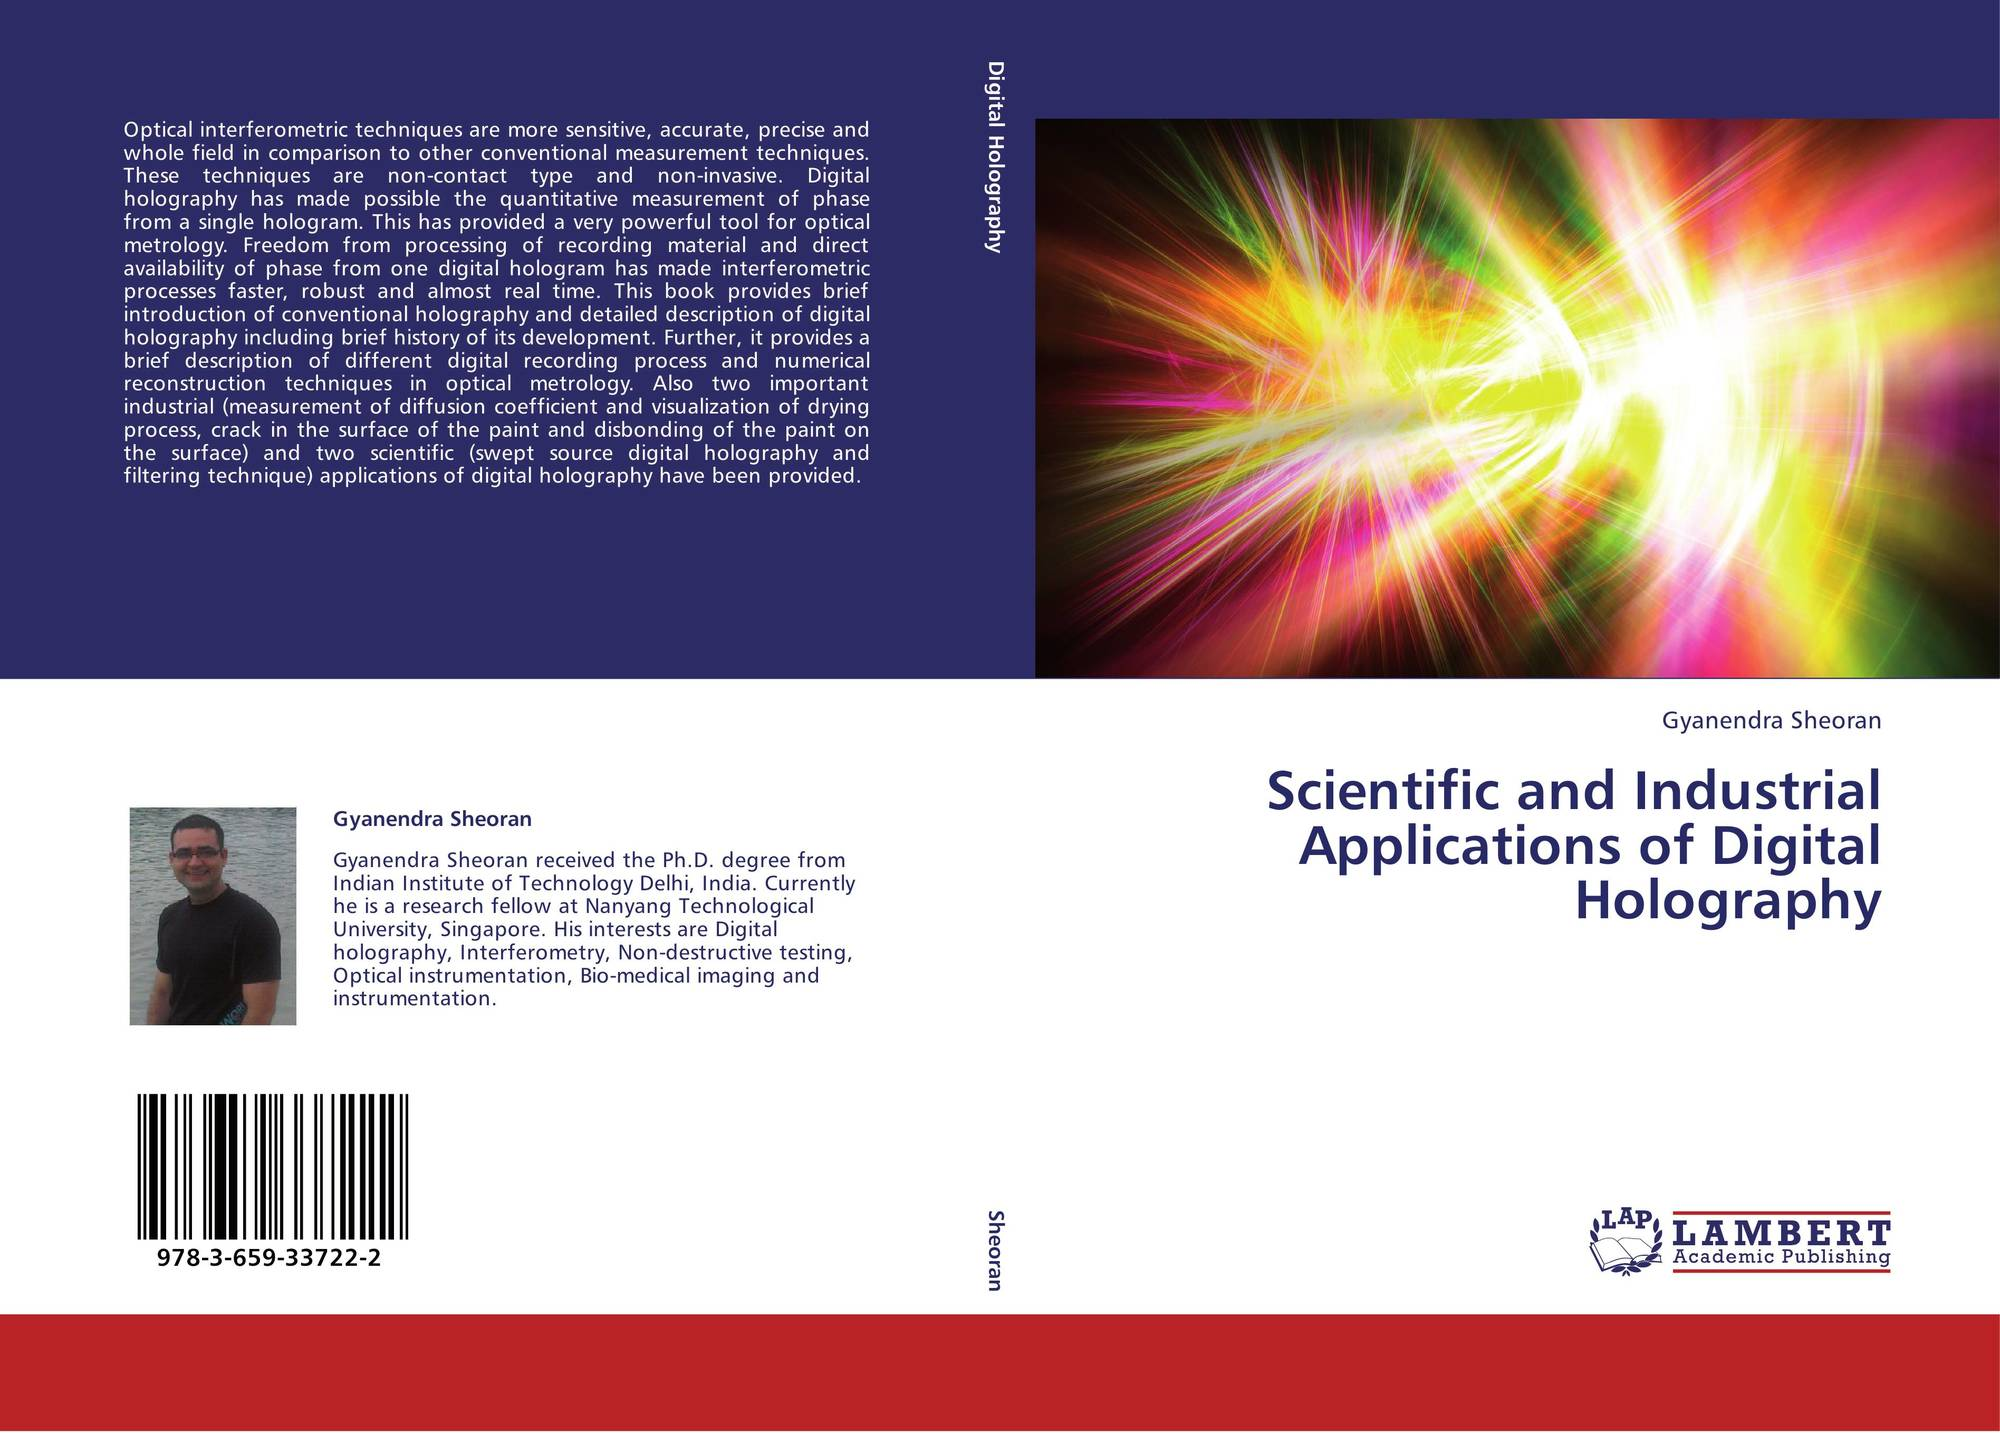 Scientific and Industrial Applications of Digital Holography